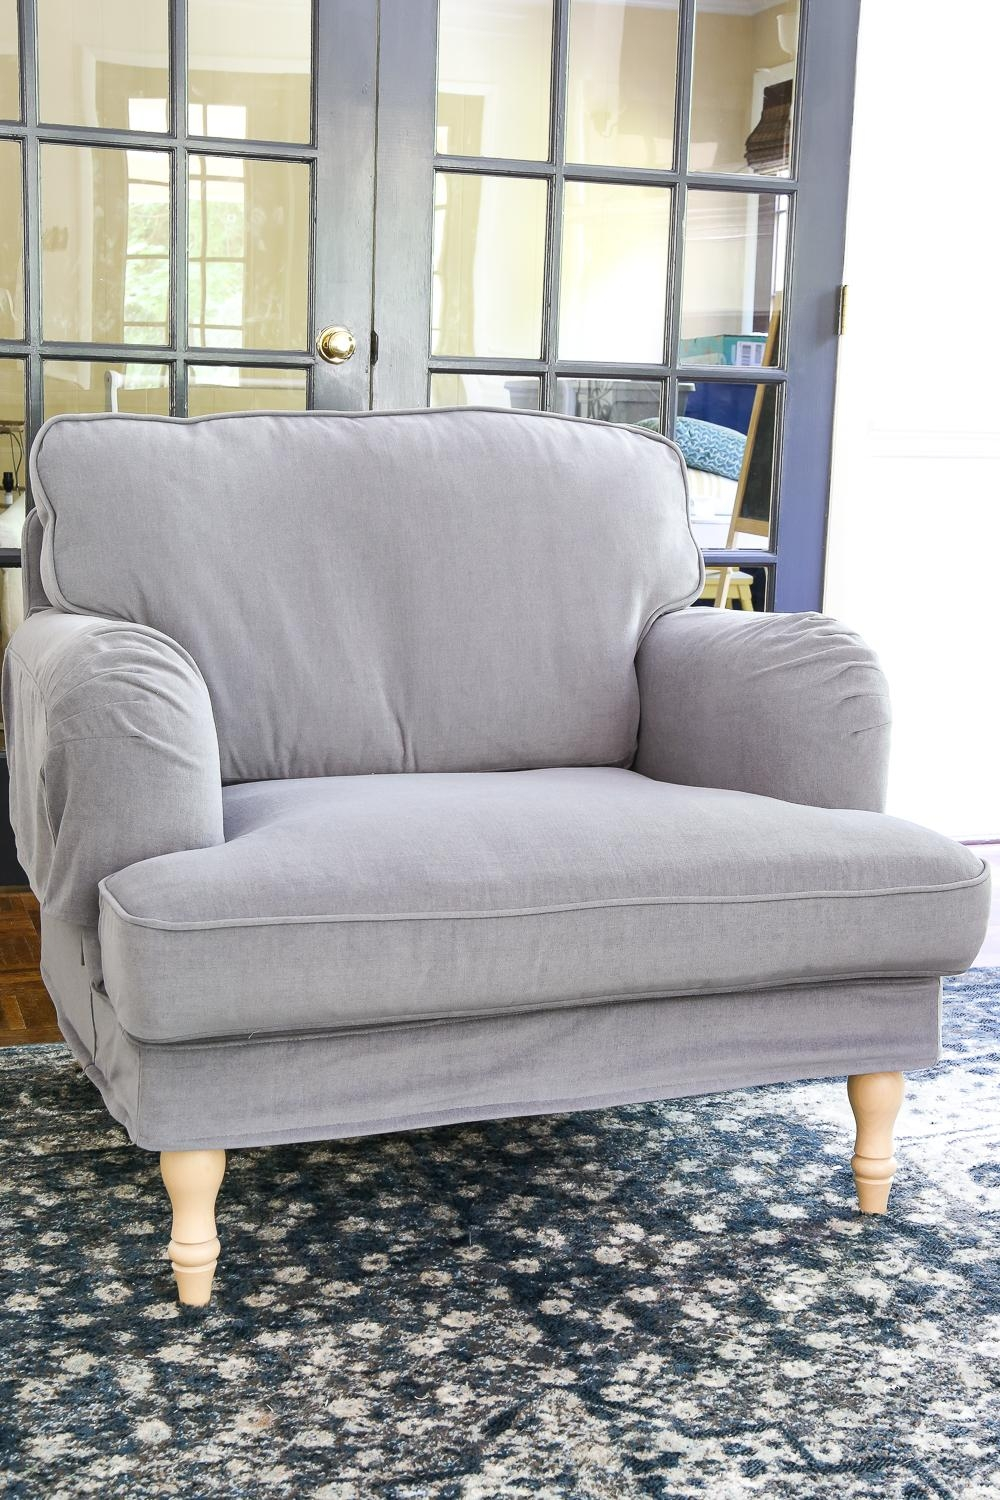 Ikea's New Sofa And Chairs And How To Keep Them Clean – Bless'er House In Sofa Chairs Ikea (View 2 of 20)